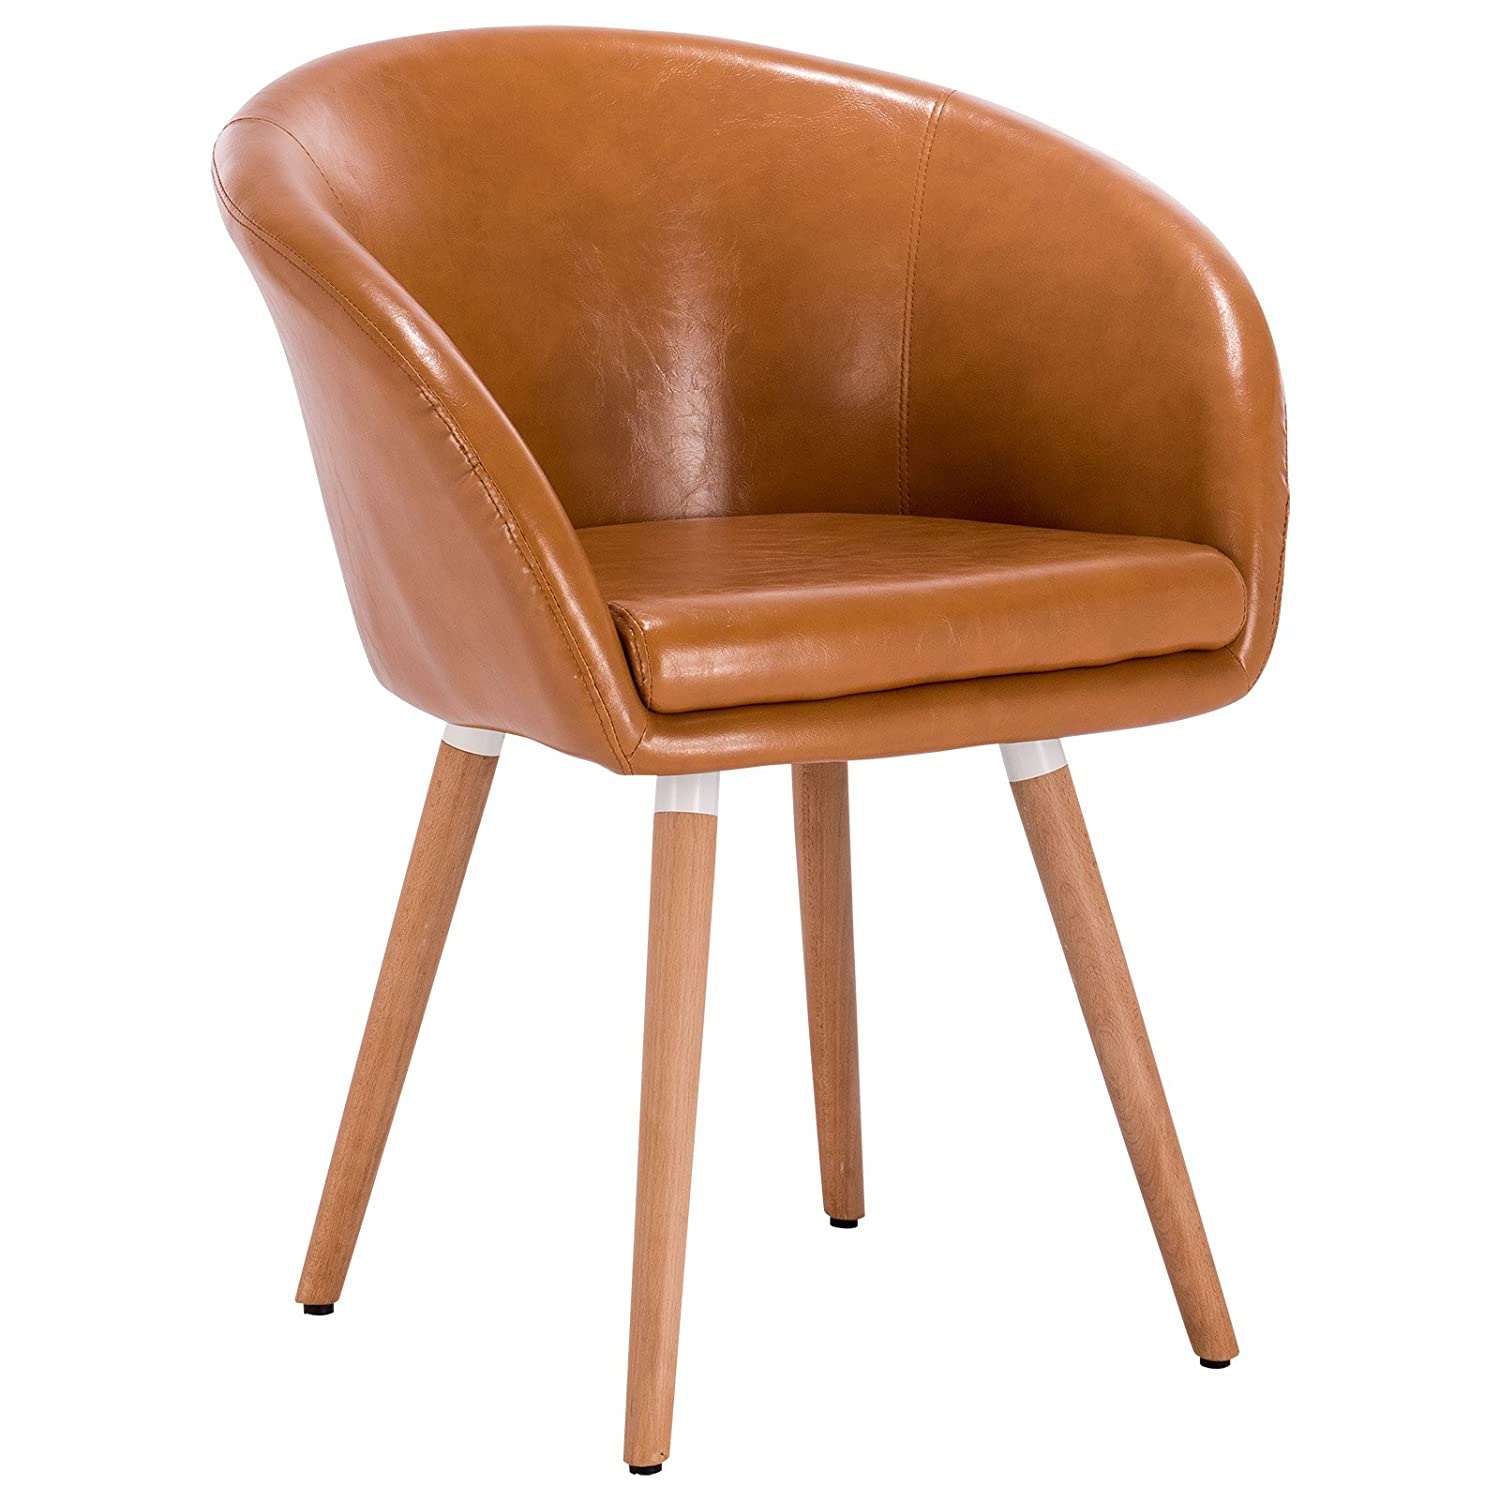 Fabulous Details About Caramel Tanned Faux Leather Retro Vintage Padded Lounge Armchair Dining Chair Pdpeps Interior Chair Design Pdpepsorg